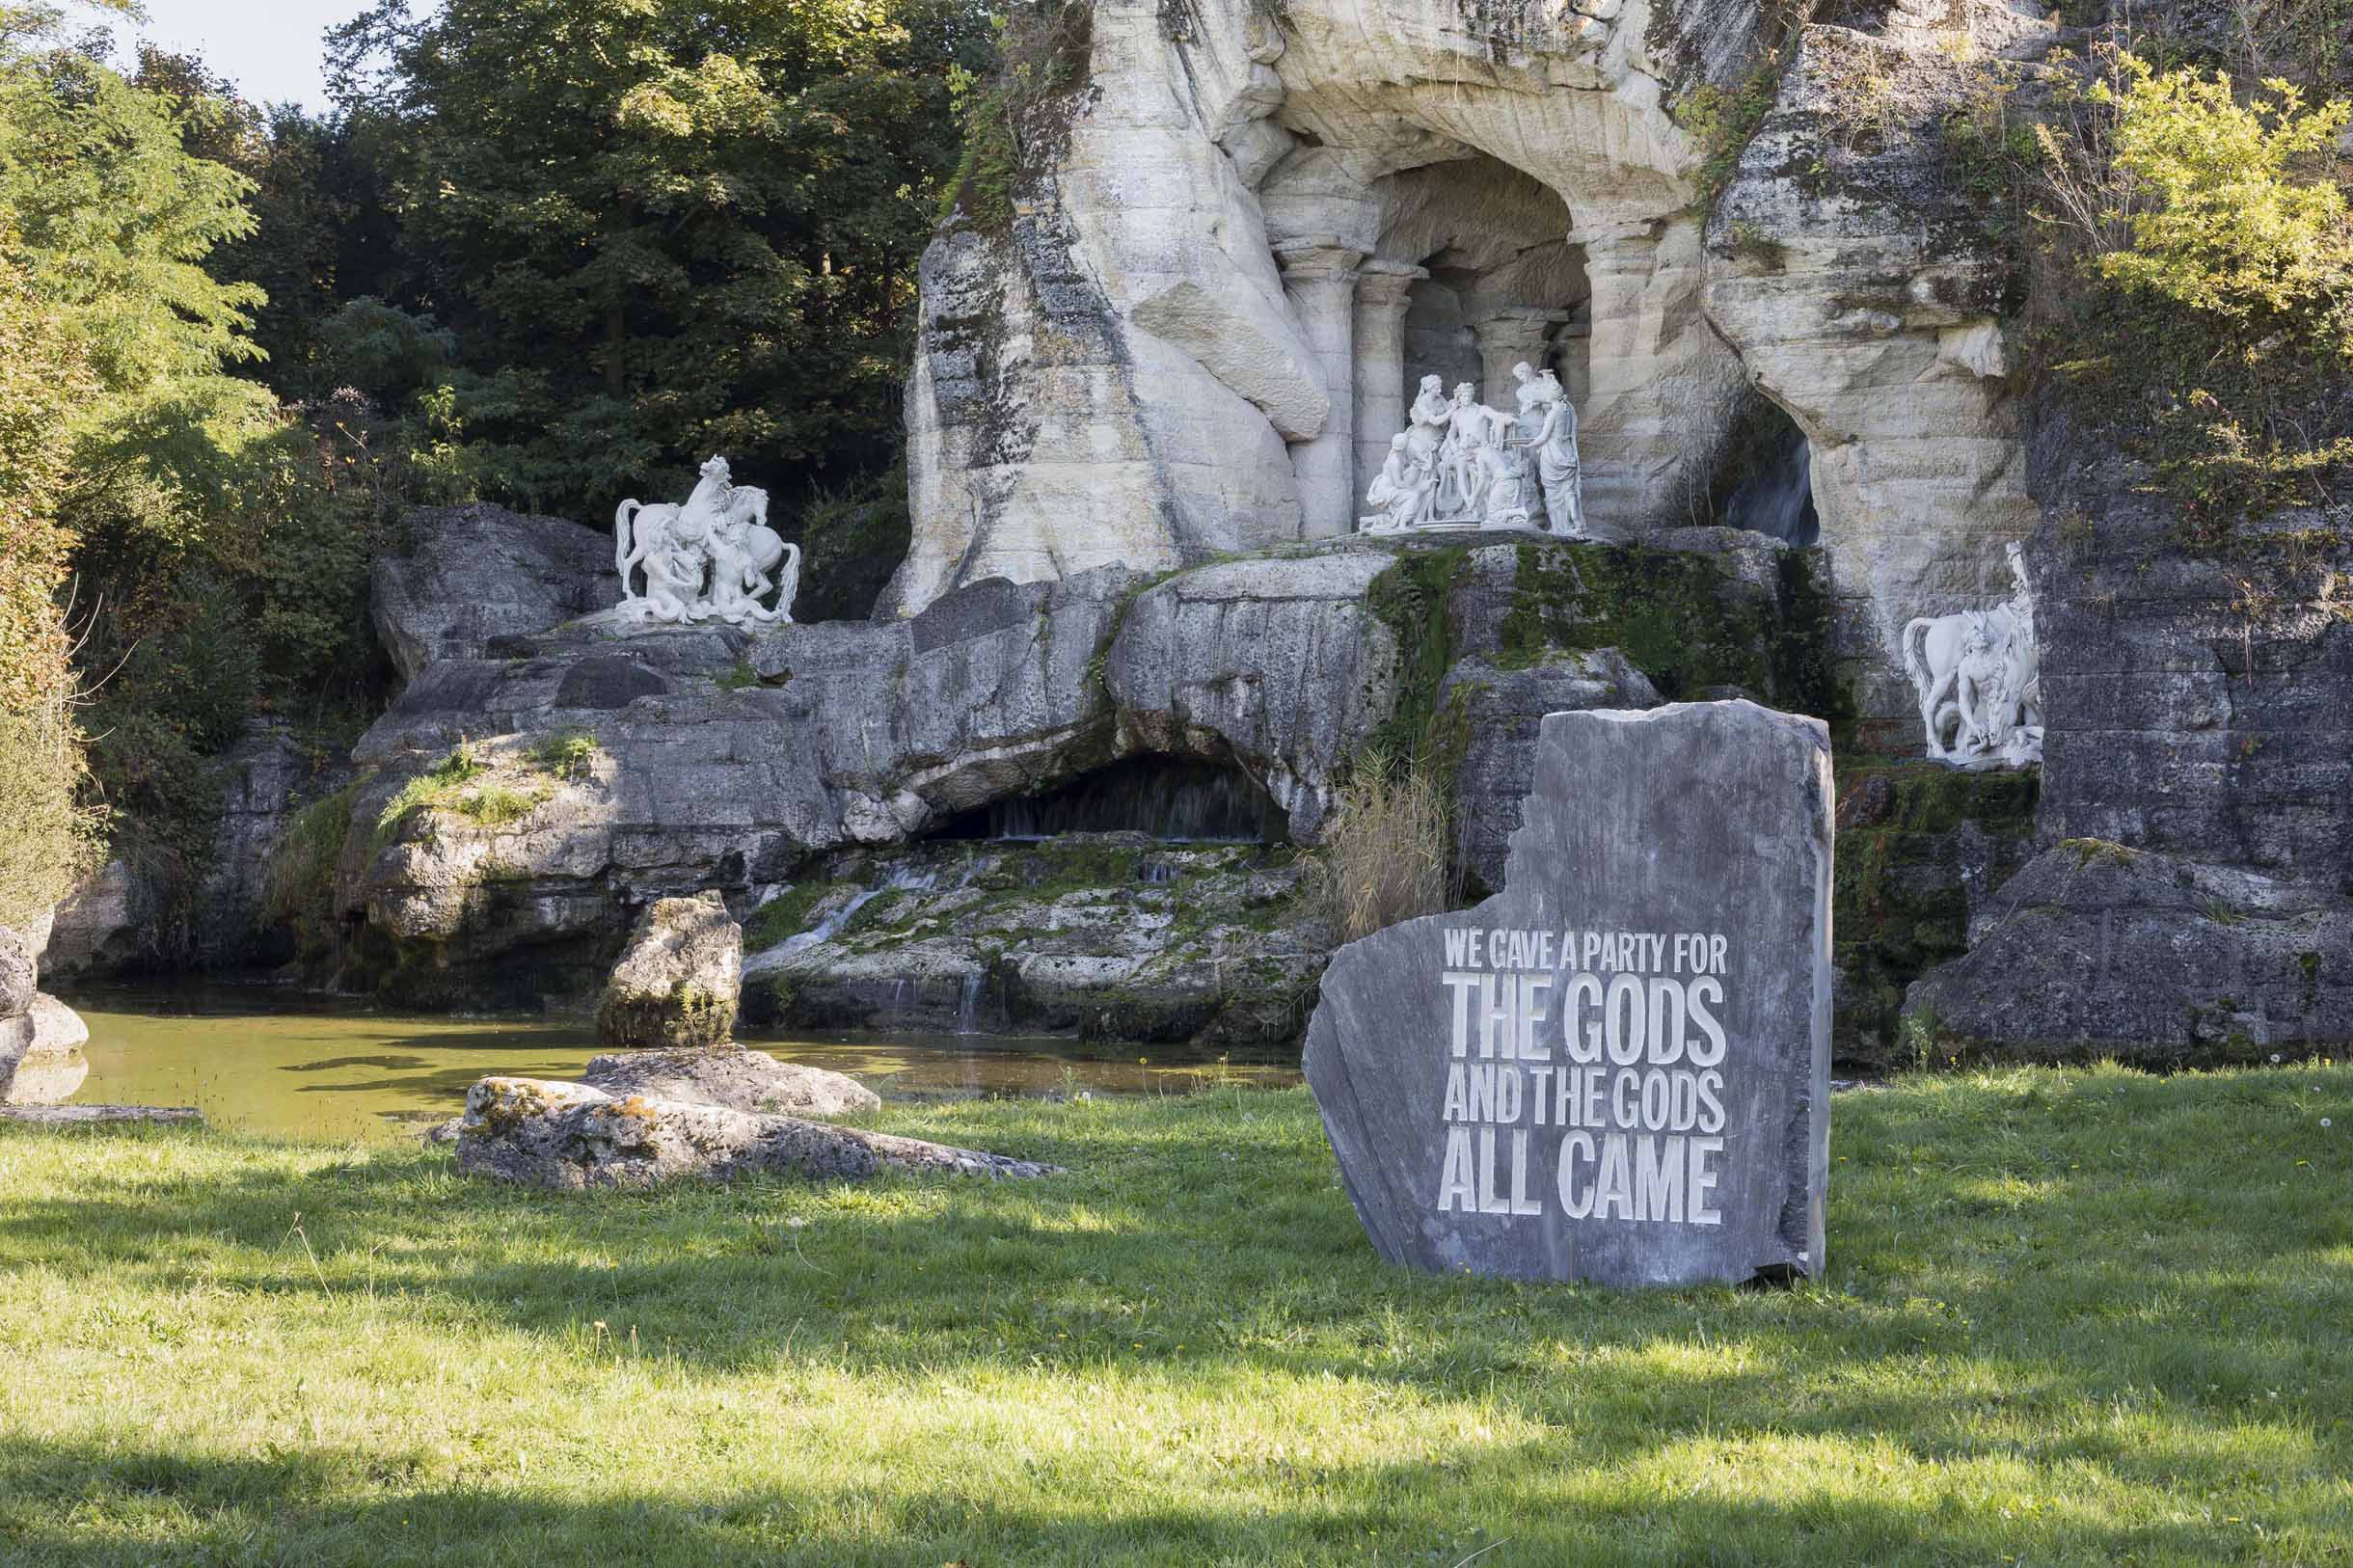 Des bains d'Apollon émerge la poésie de John Giorno, personnage iconique des premiers films d'Andy Warhol. Sa culture pop s'immisce audacieusement dans les jardins de Versailles / John Giorno, We gave a party for the gods and the gods all came, 2017 Roches calcaires gravées Courtesy de l'artiste